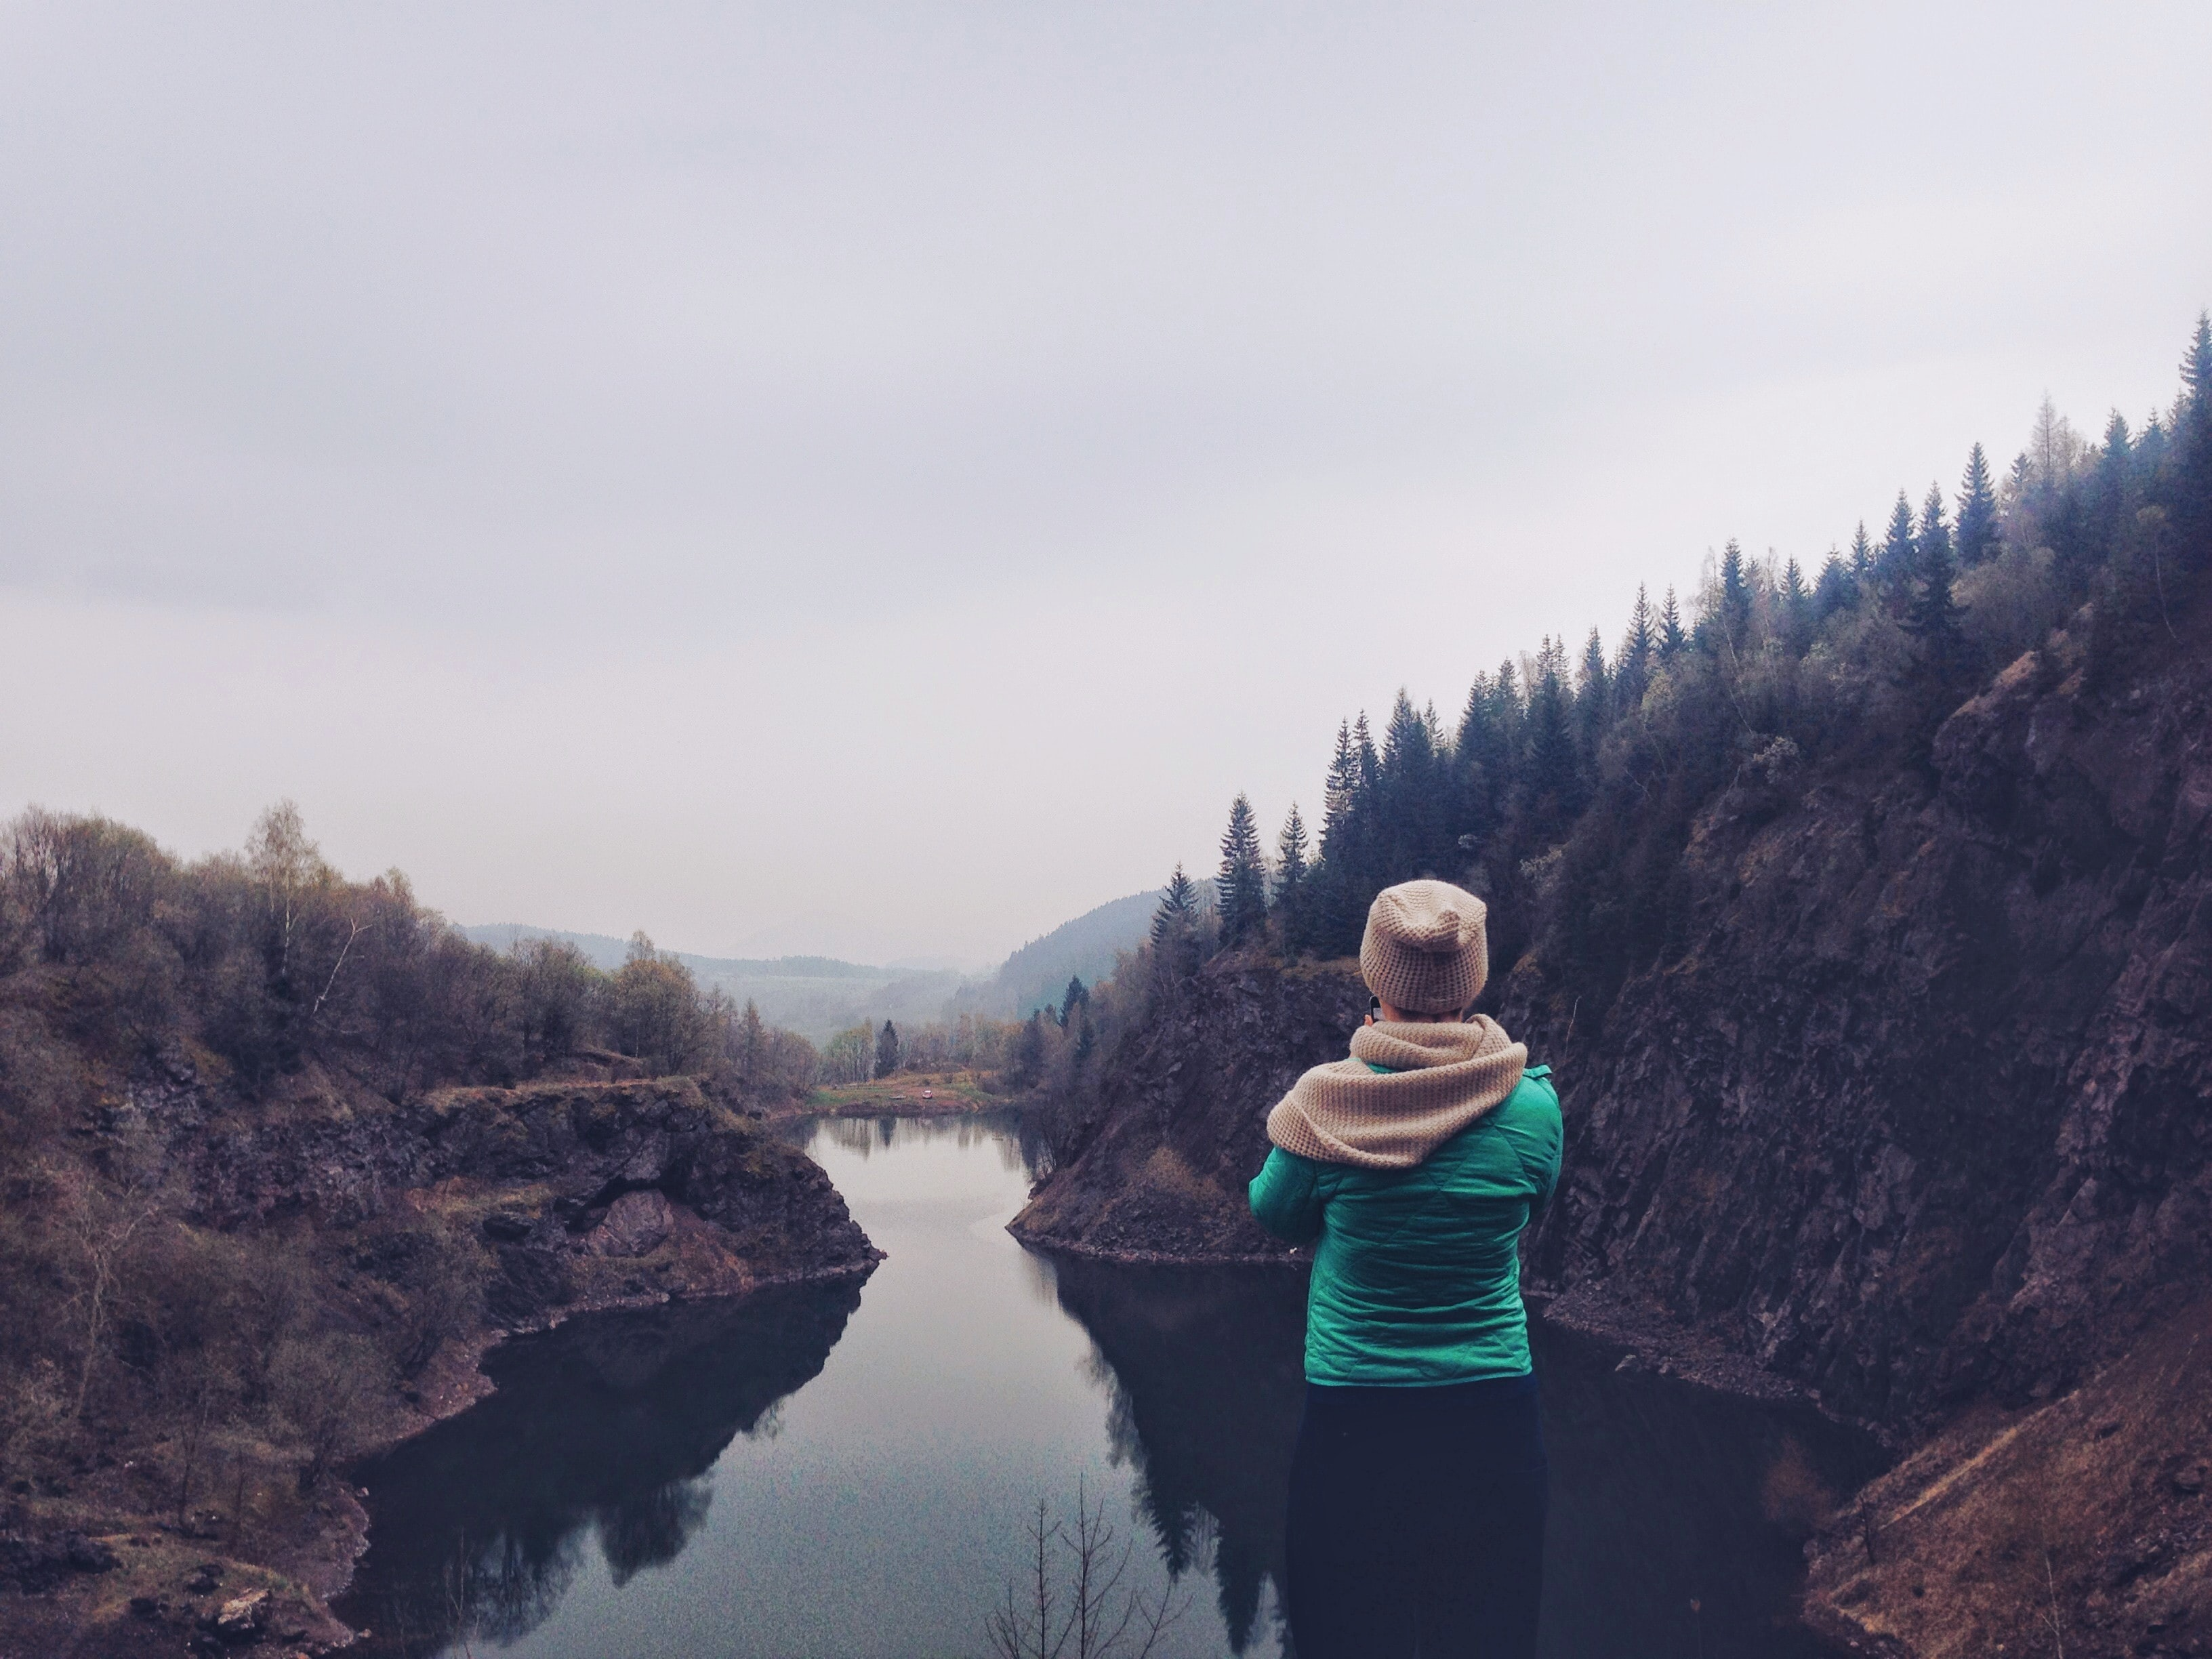 A woman admiring a small lake in a rocky basin on a cloudy day